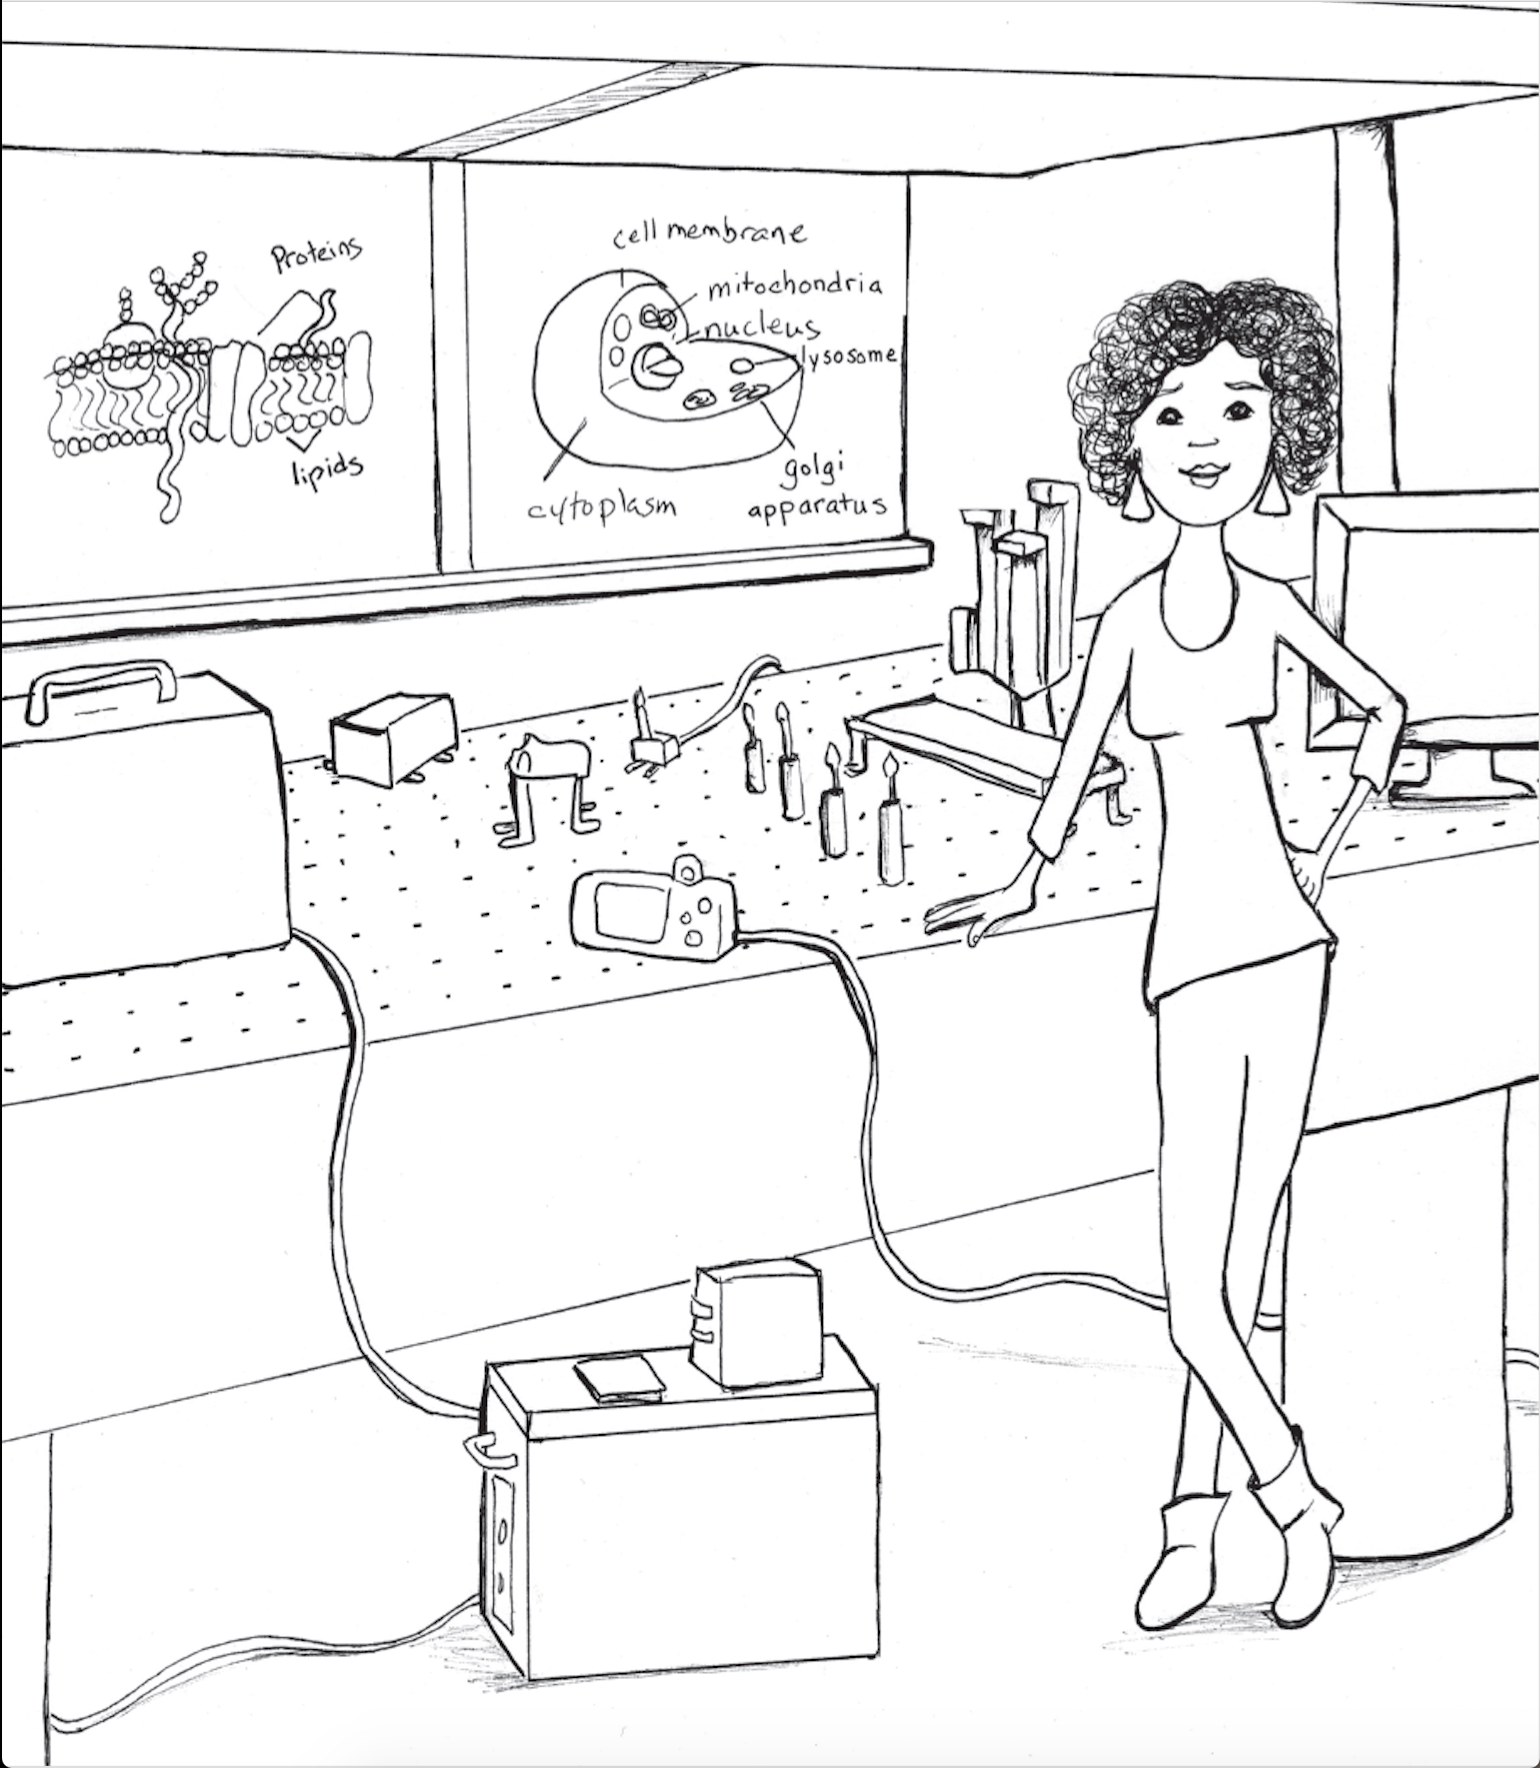 LaNell Williams '15, who studied physics at Wesleyan, is one of 22 women in science and technology careers featured in a new coloring book by Sara MacSorley.